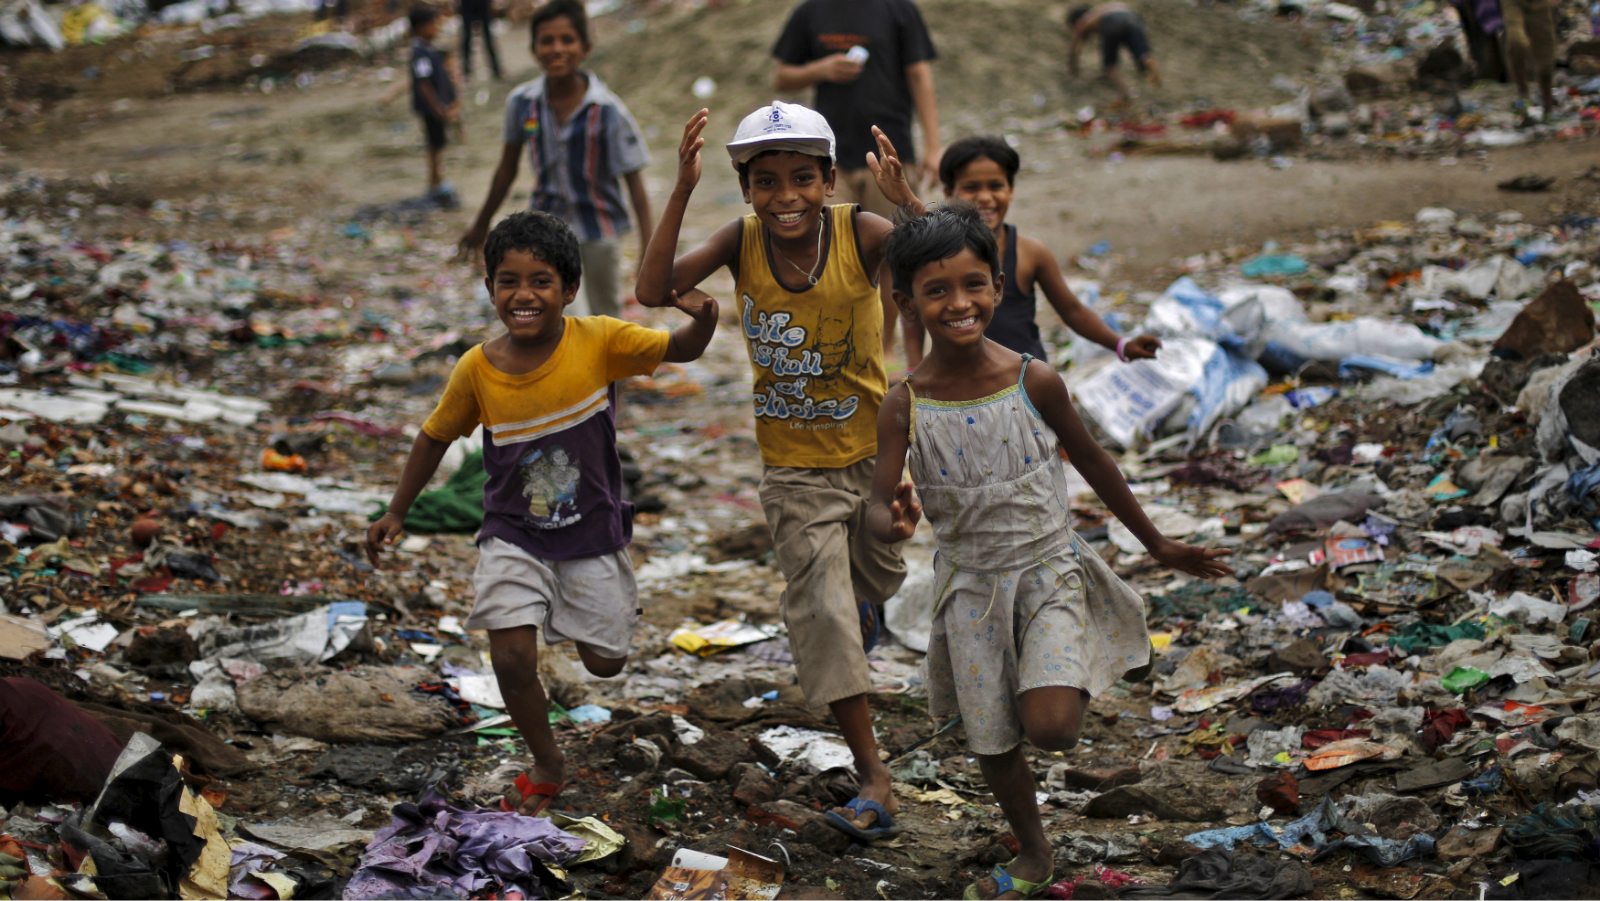 Children react to the camera as they play outside their homes in New Delhi, India May 13, 2015.